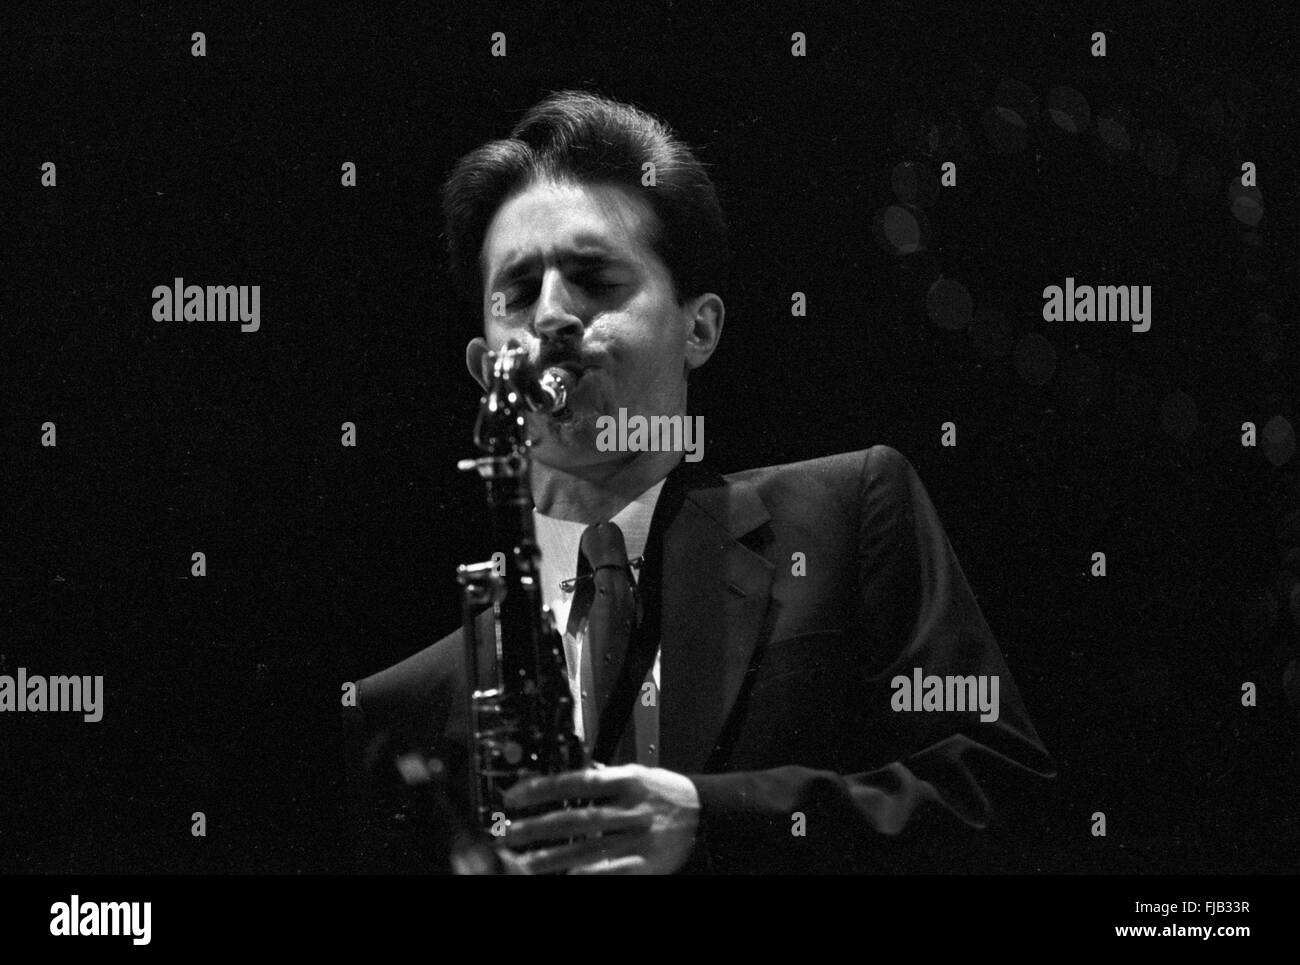 Scott Hamilton at the Kool Jazz Festival in Stanhope, New Jersey, June 1982. - Stock Image